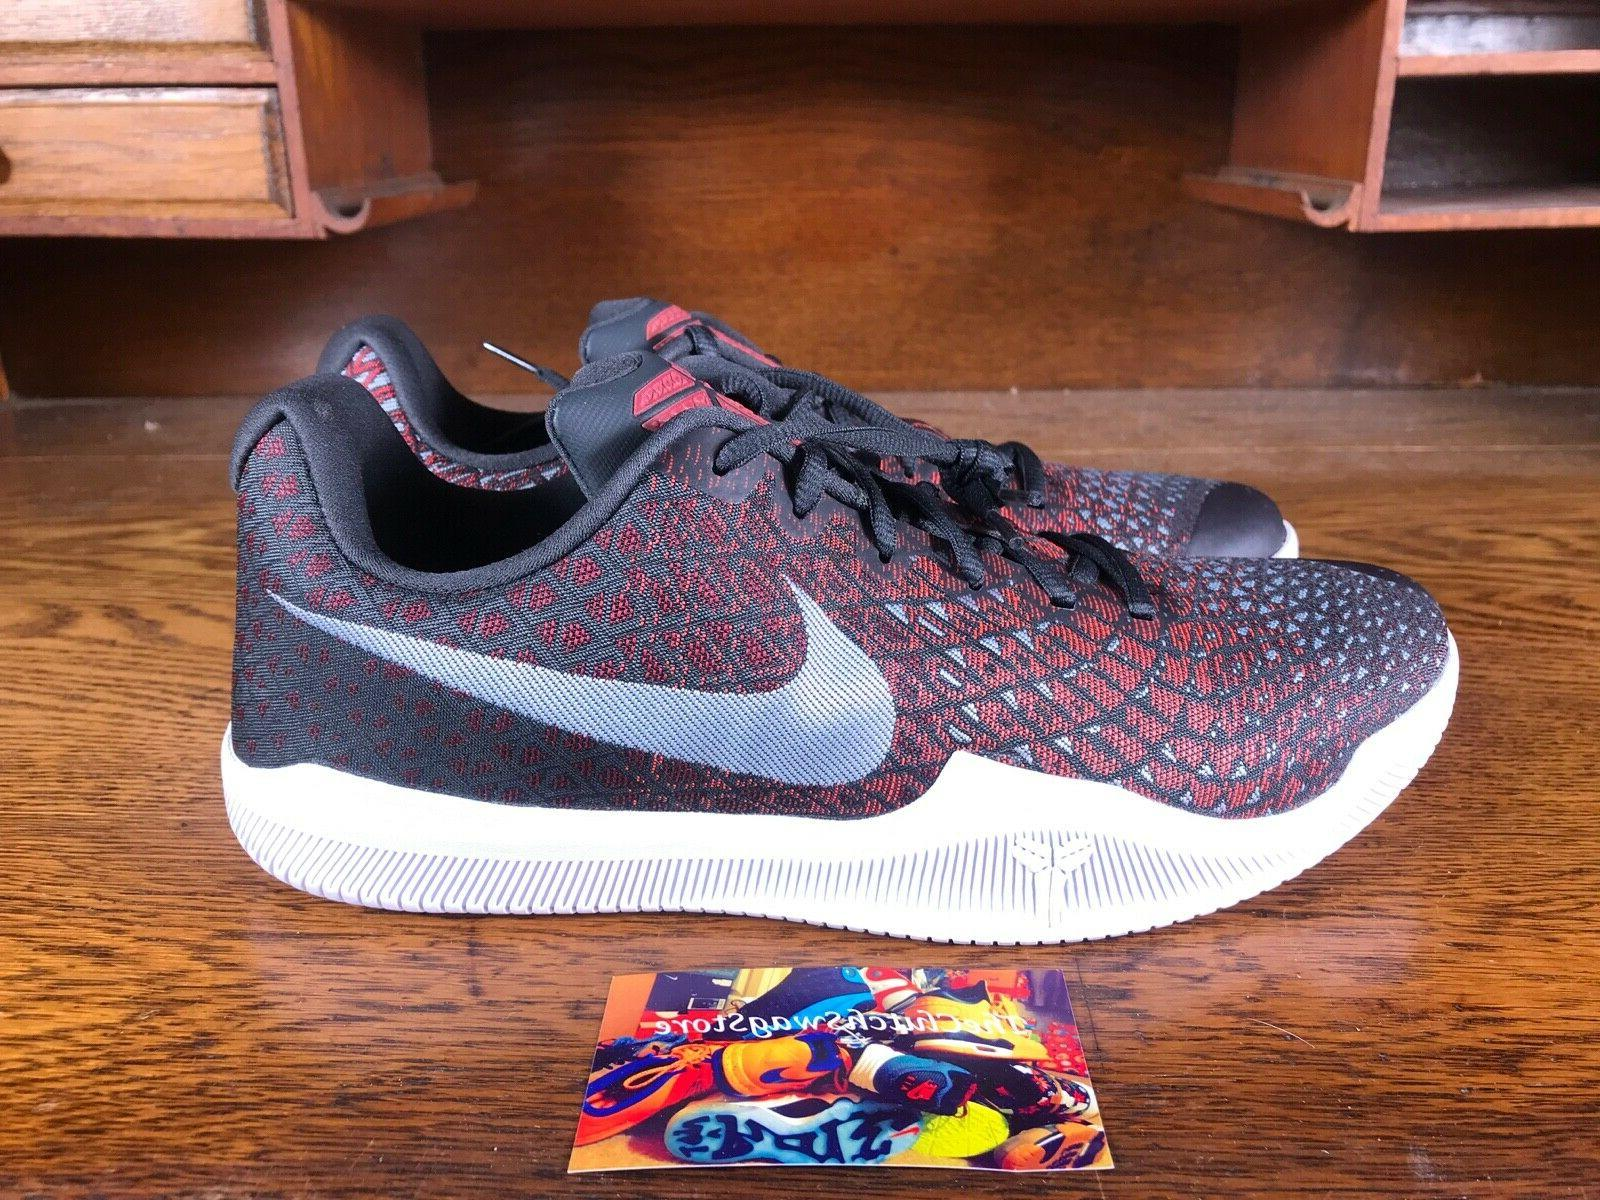 Nike Mamba Instinct Mens Low Basketball 852473-006